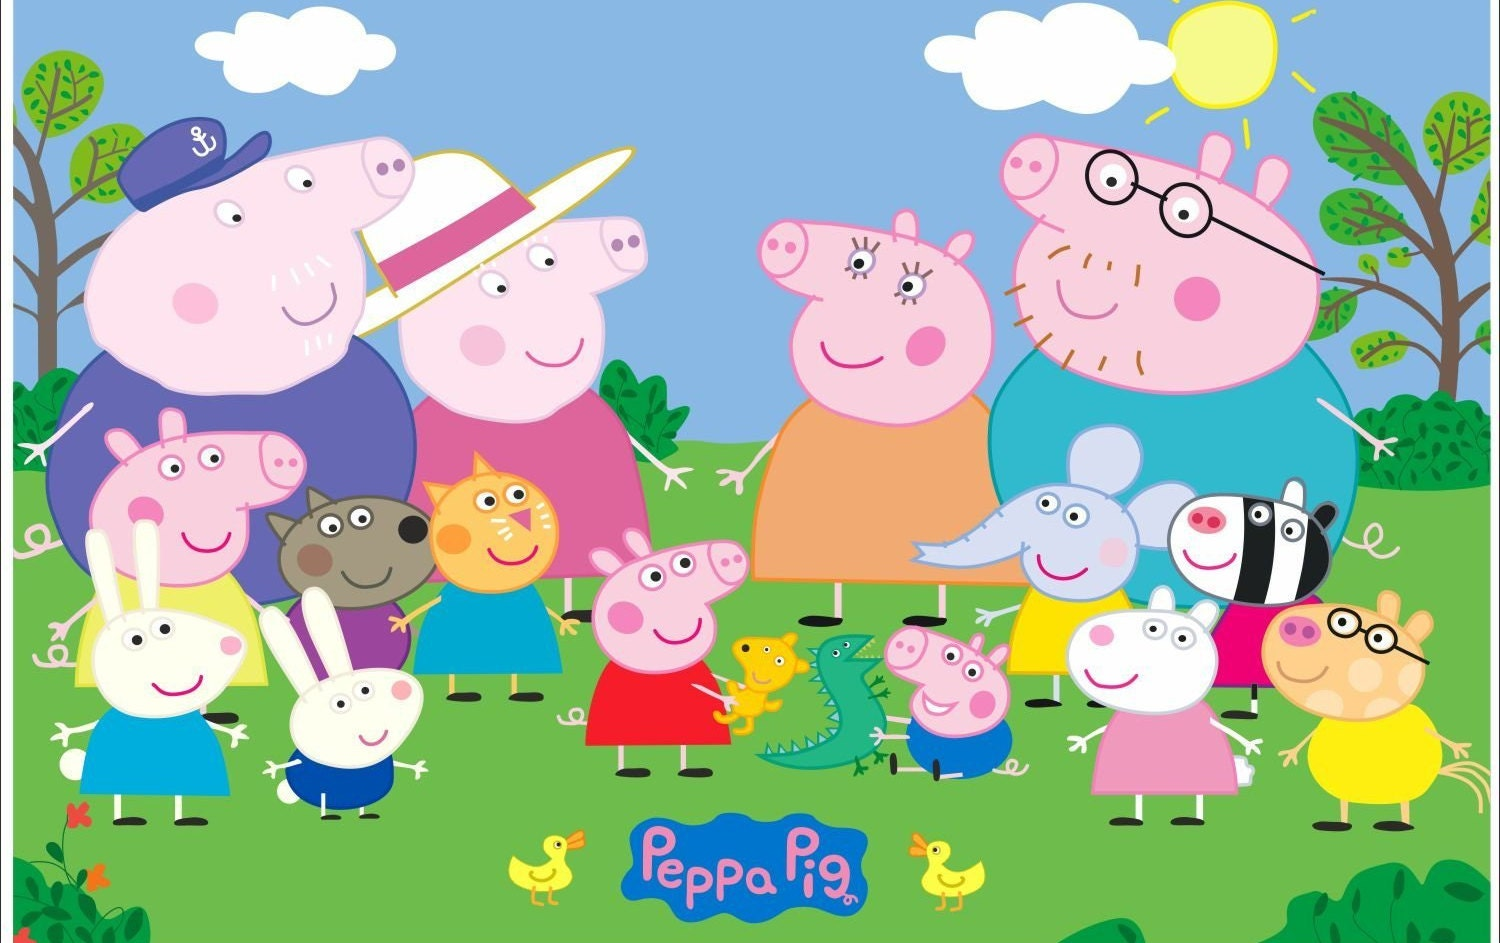 Peppa Pig Wallpaper Hd Simplexpict1st Org